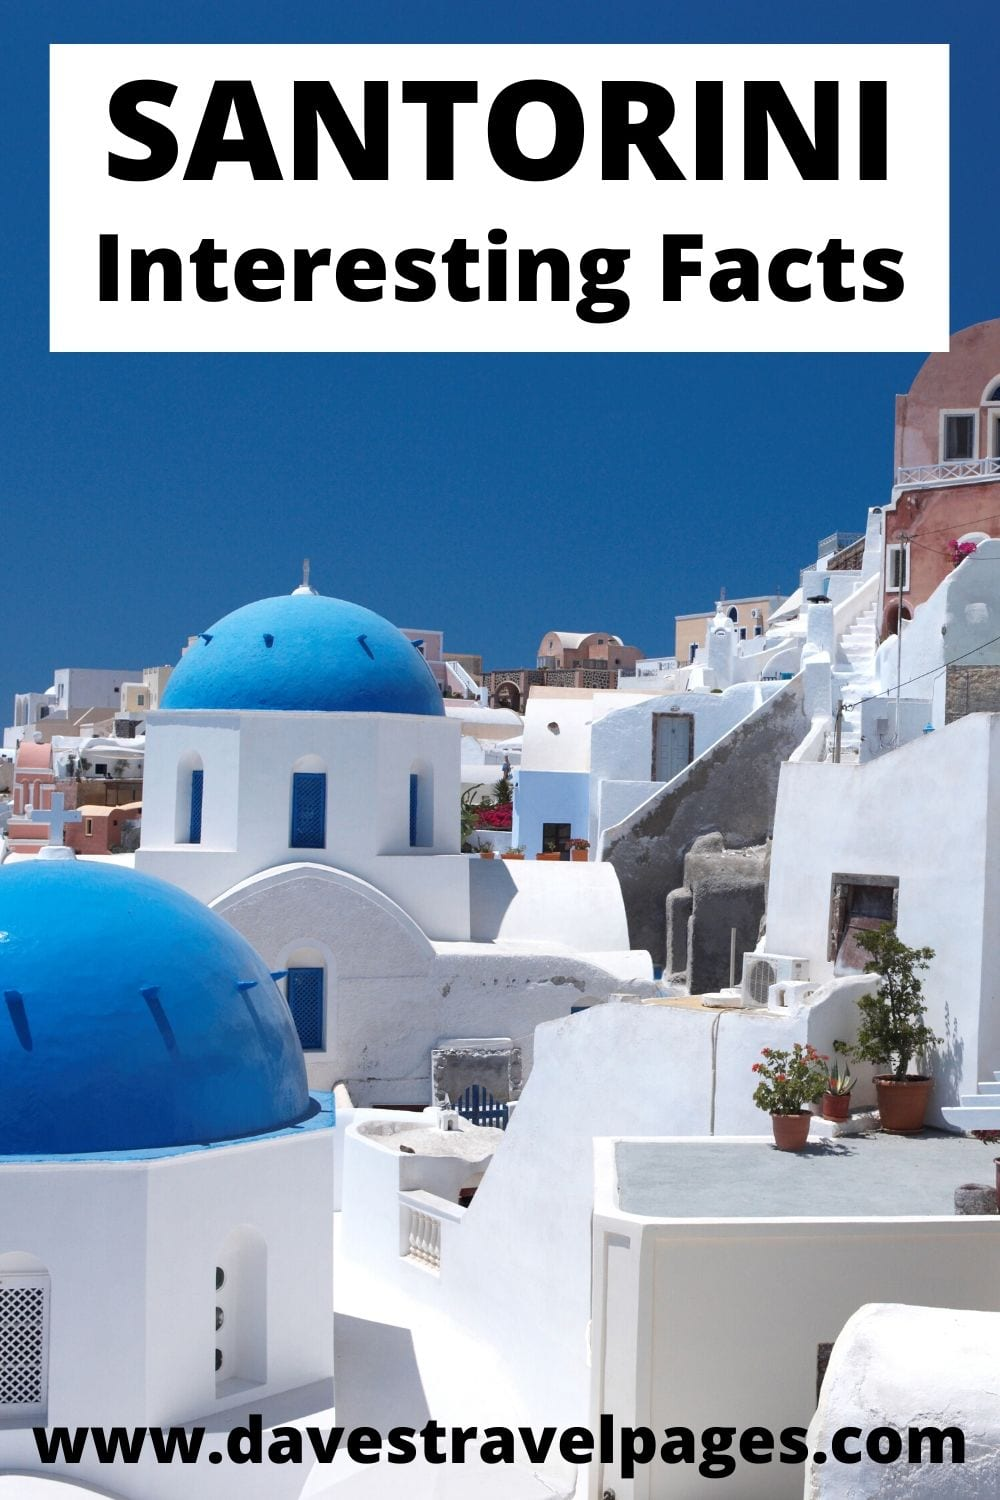 Fun and interesting facts about Santorini in Greece